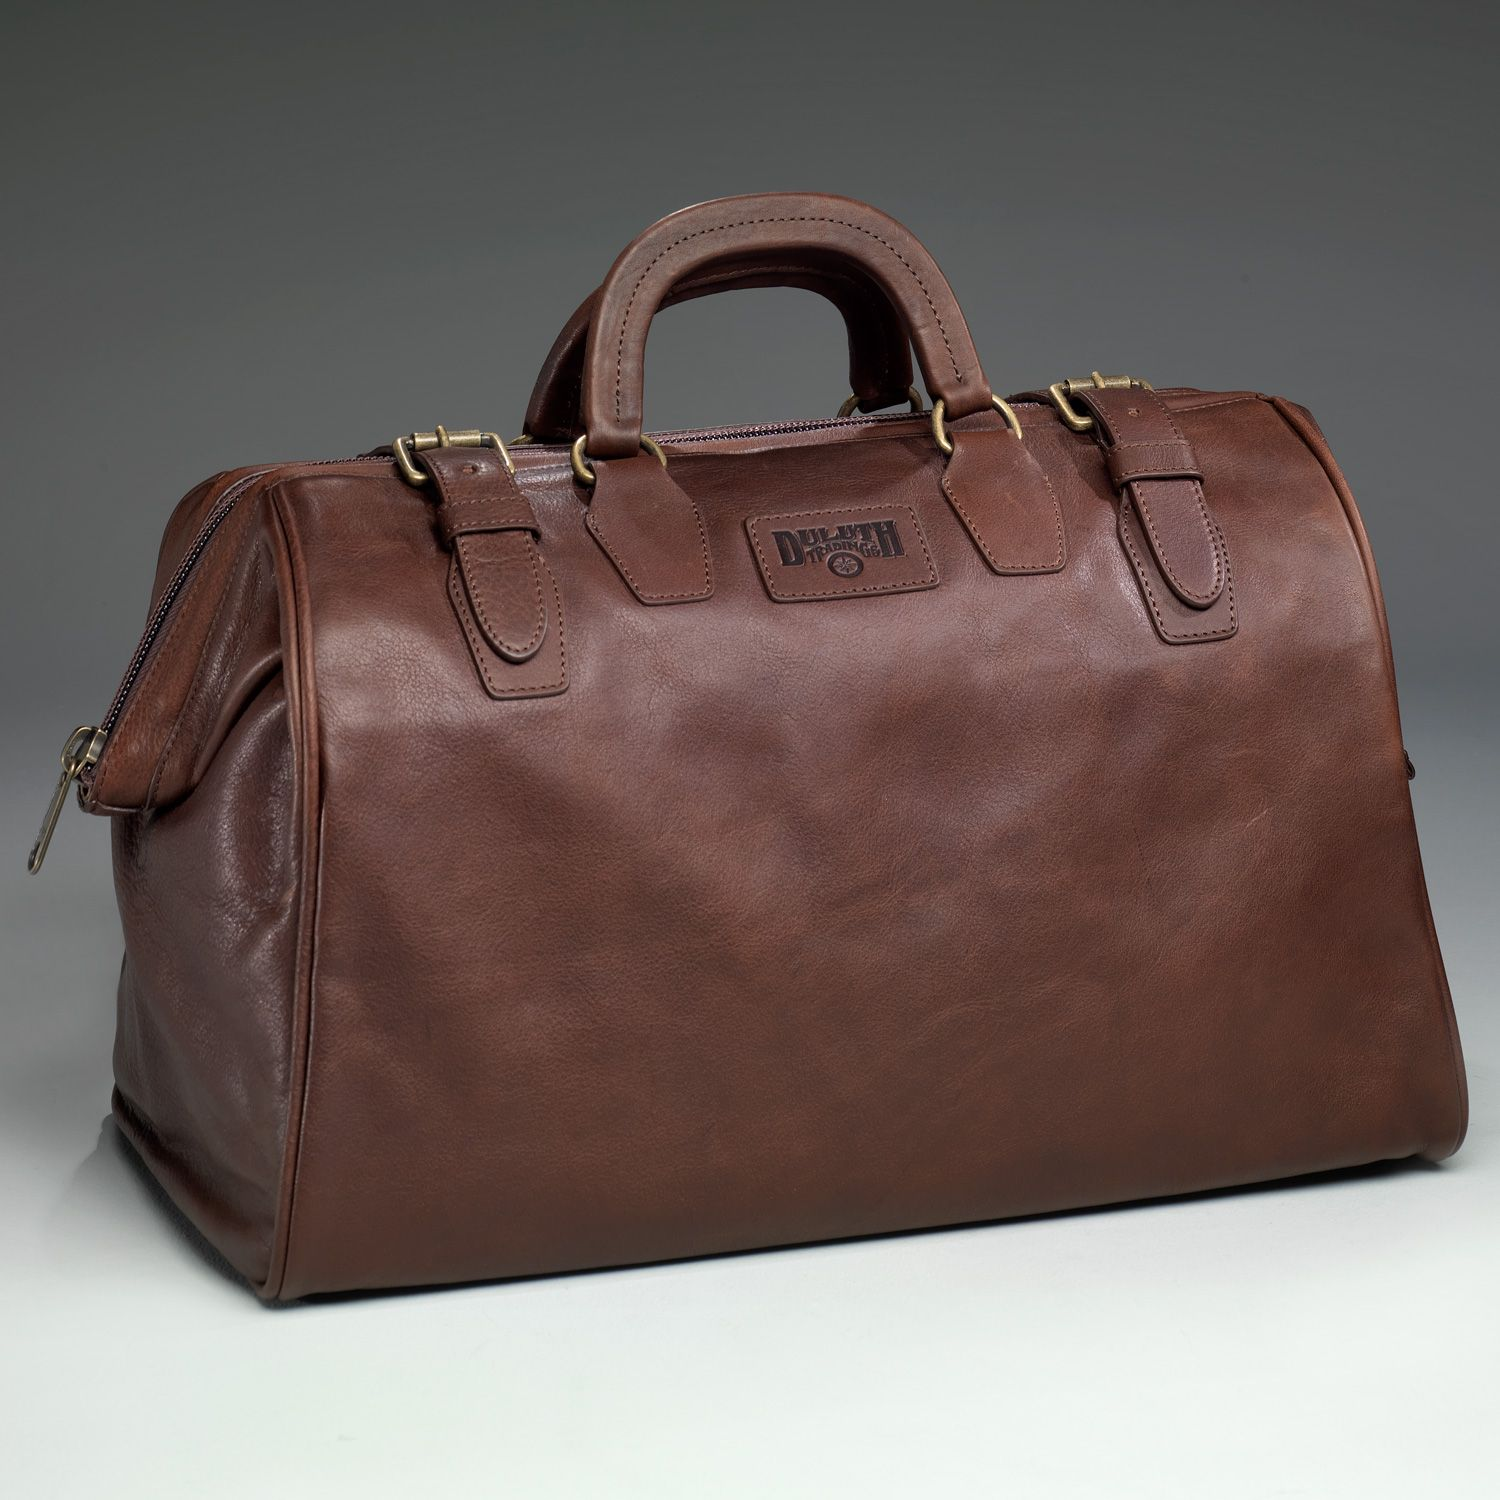 c4e156b1d0abb The Leather AWOL Bag is like the one your Dad carried when the Army shipped  him overseas in 1943.